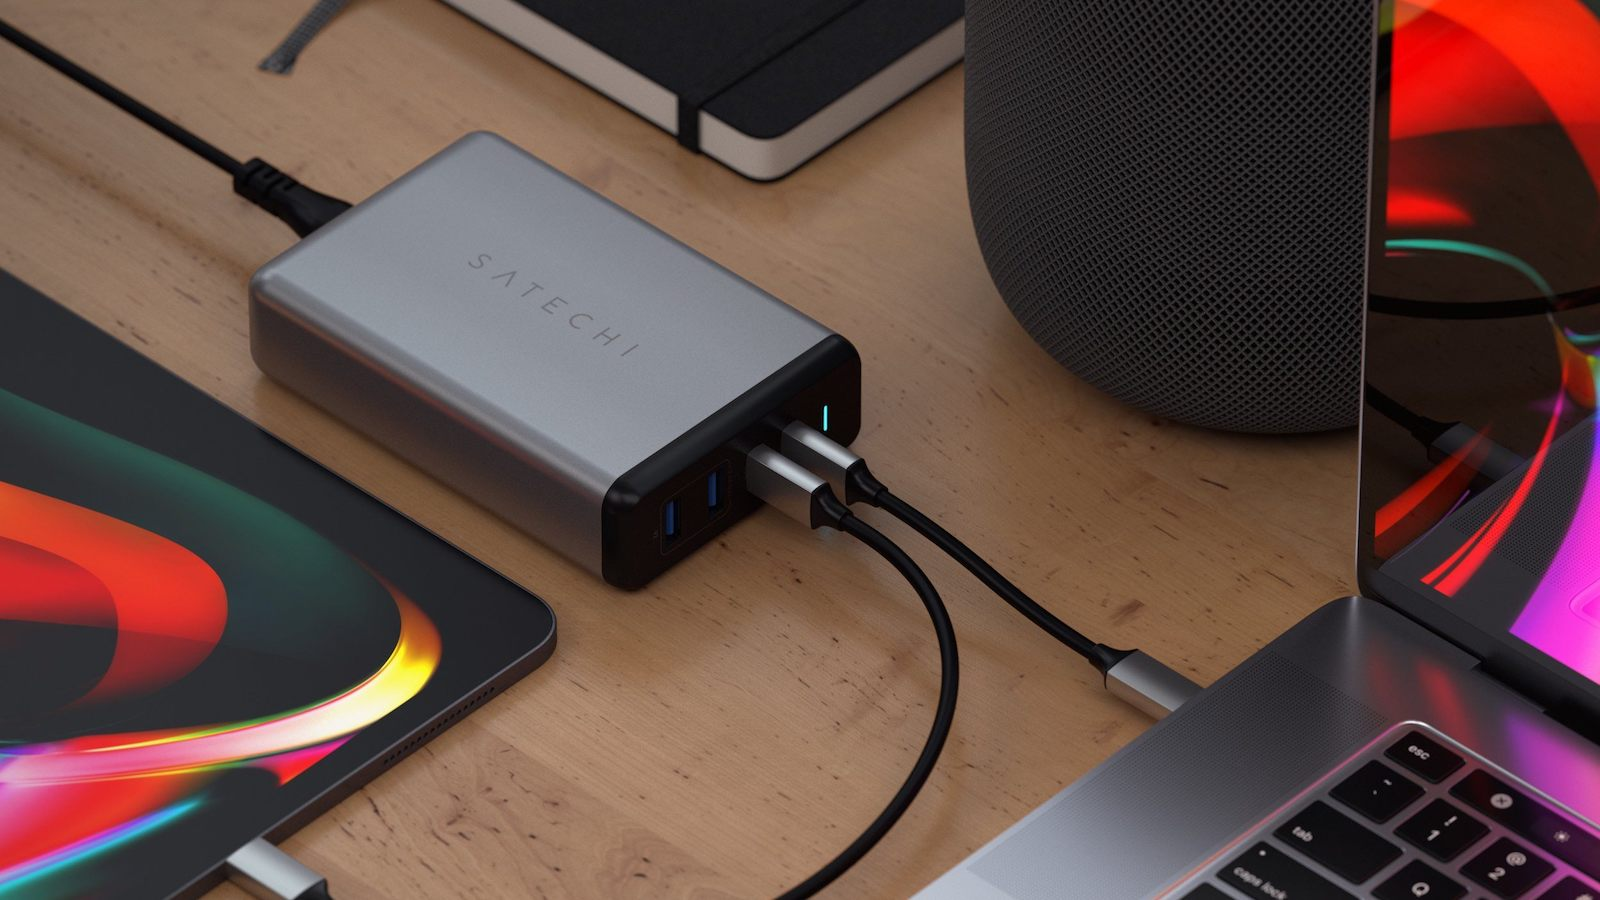 Satechi 108W Pro USB-C PD Wireless Desktop Charger